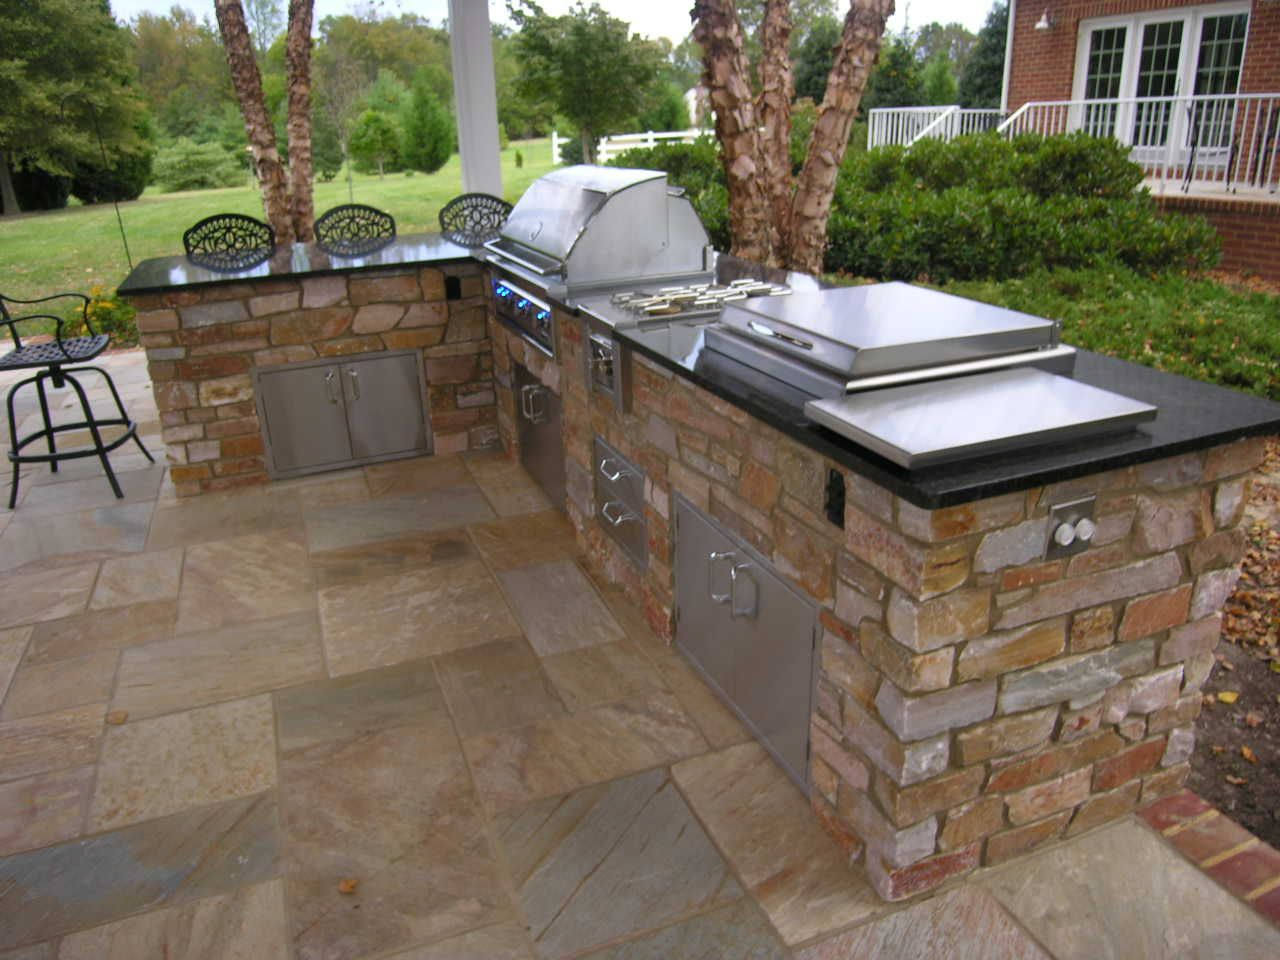 Outdoor Kitchens This Ain T My Dad S Backyard Grill Outdoor Kitchen Design Outdoor Kitchen Countertops Backyard Kitchen Best outdoor kitchen ideas